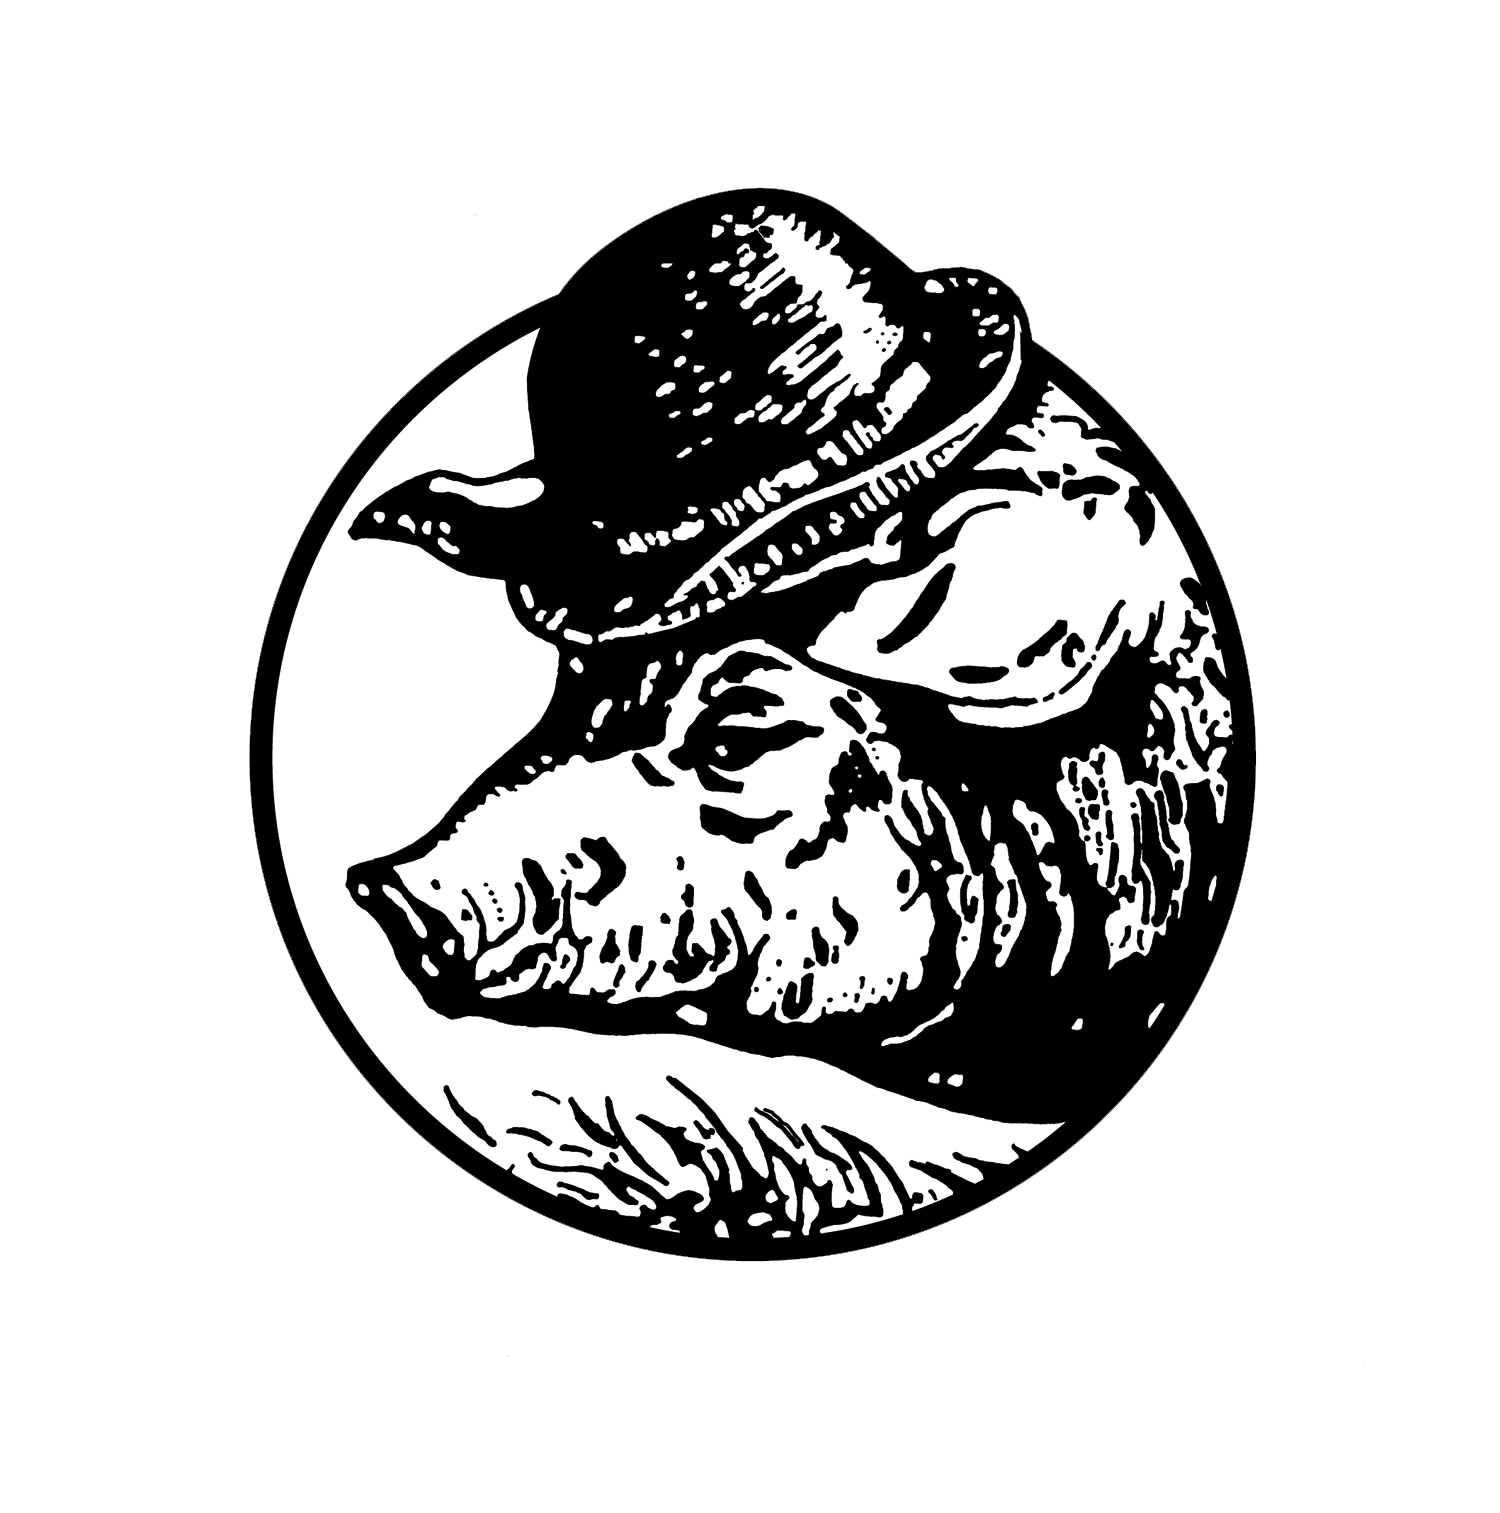 Welcome to The Bunganut Pig